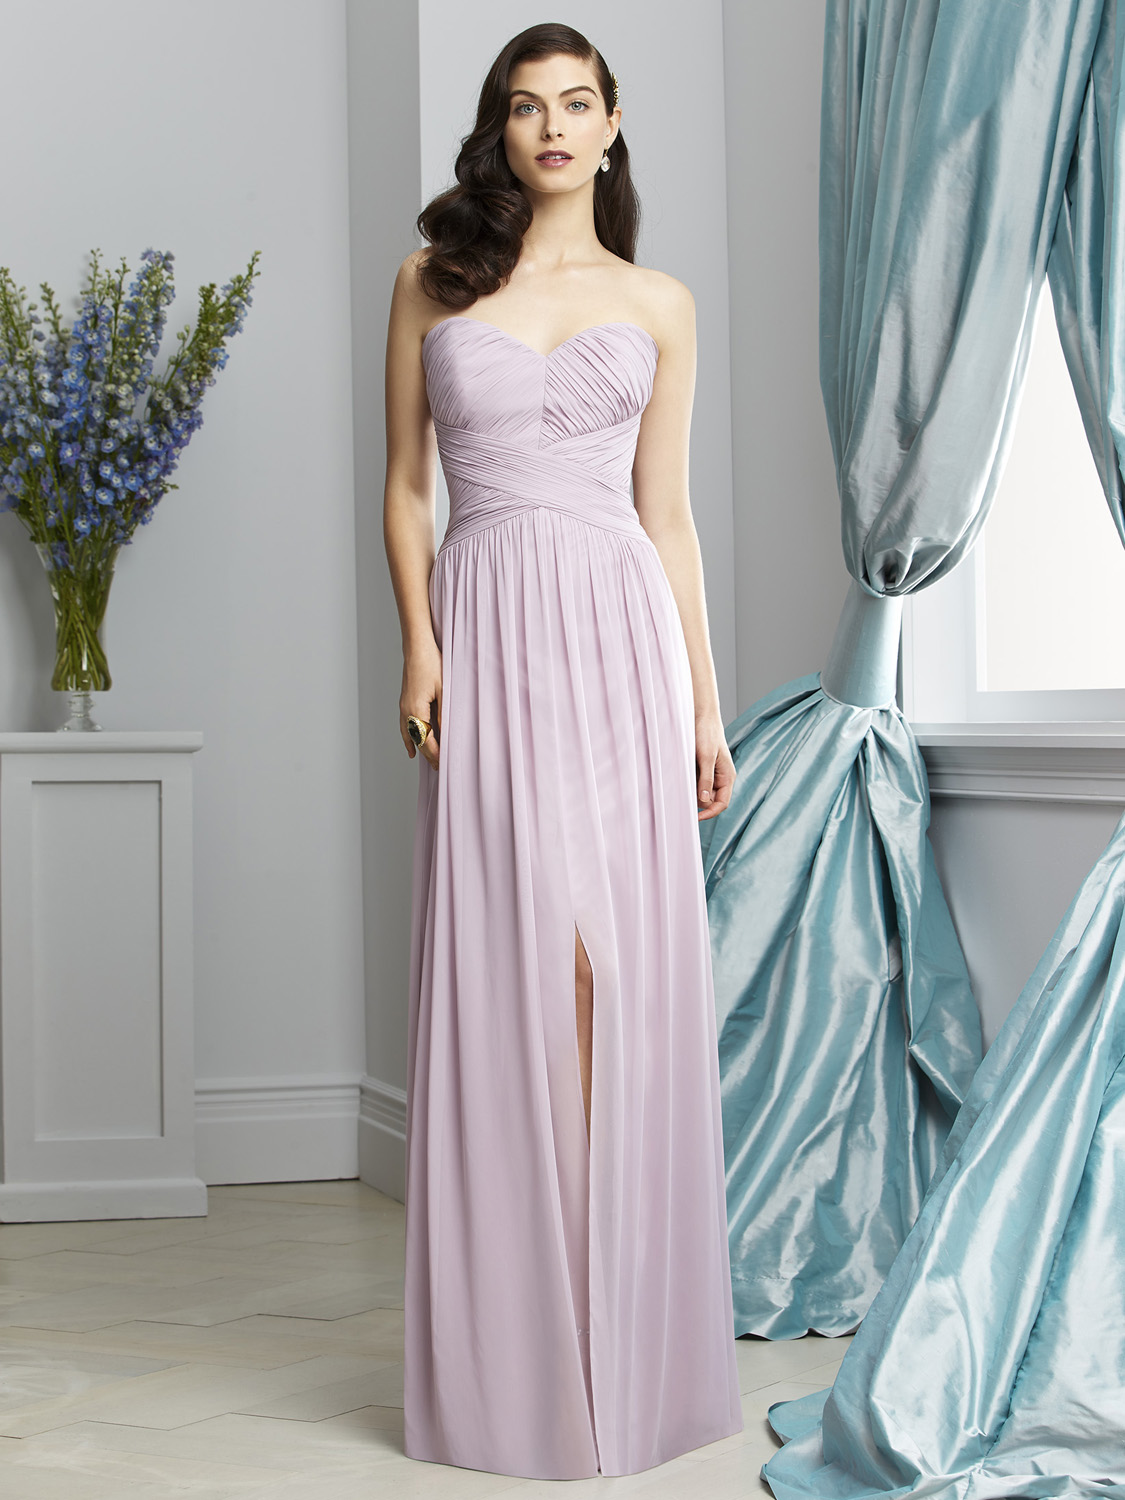 Bridesmaid day sunday 7th june butterfly bridal boutique dessy bridesmaid dresses oxford ombrellifo Images